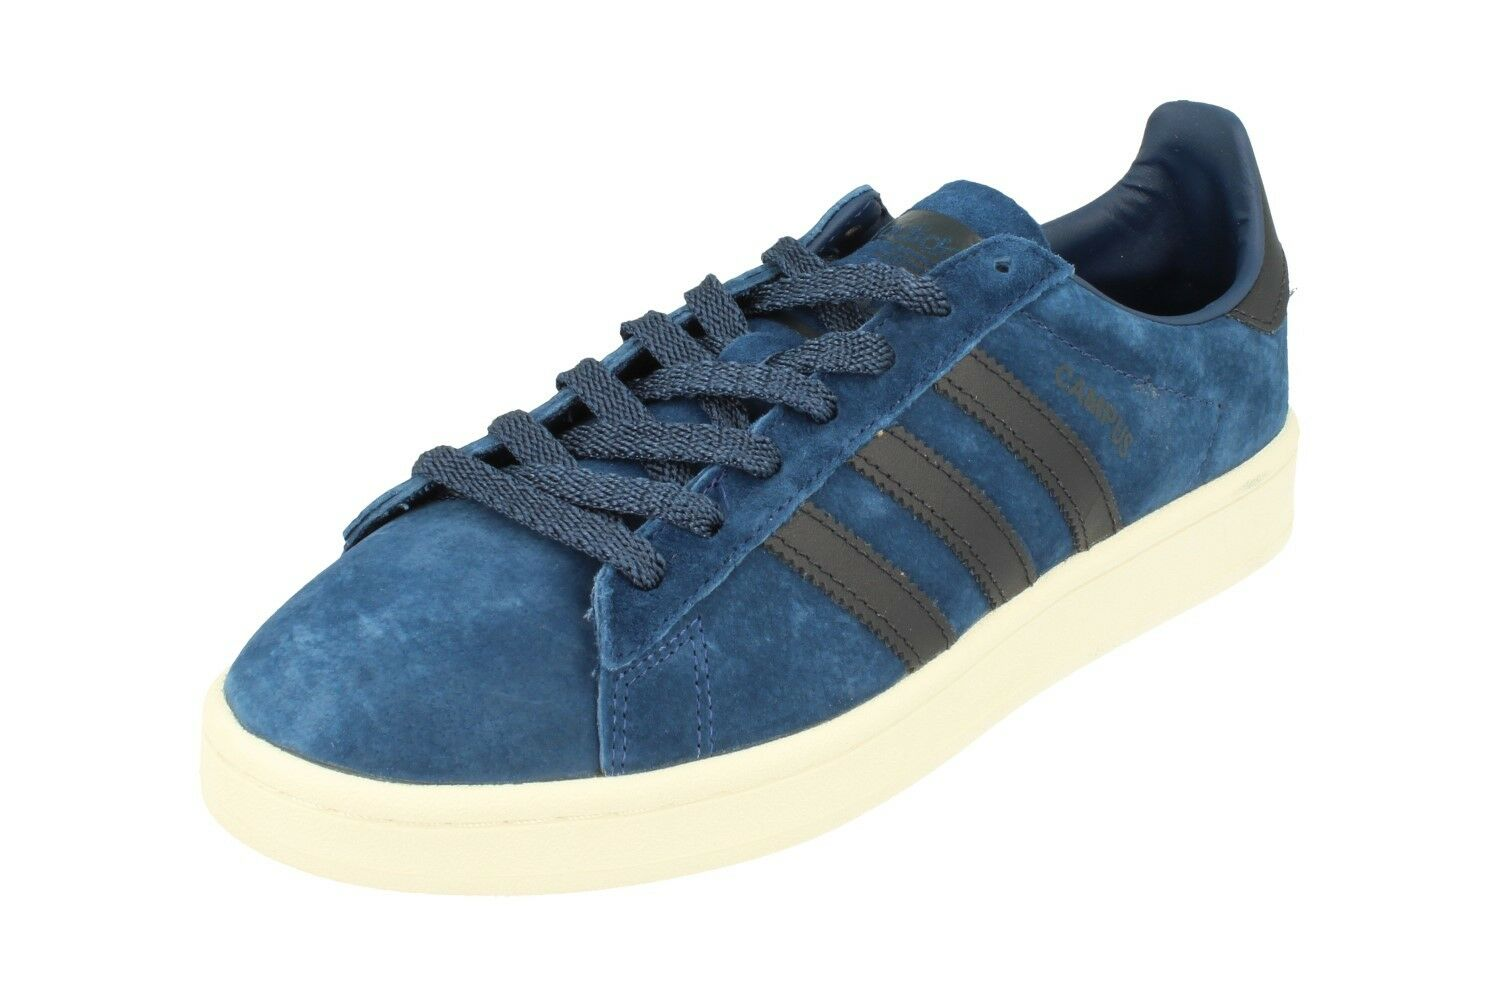 Adidas Originals Campus  Uomo Schuhes Trainers BB0087 Sneakers Schuhes Uomo e345c4